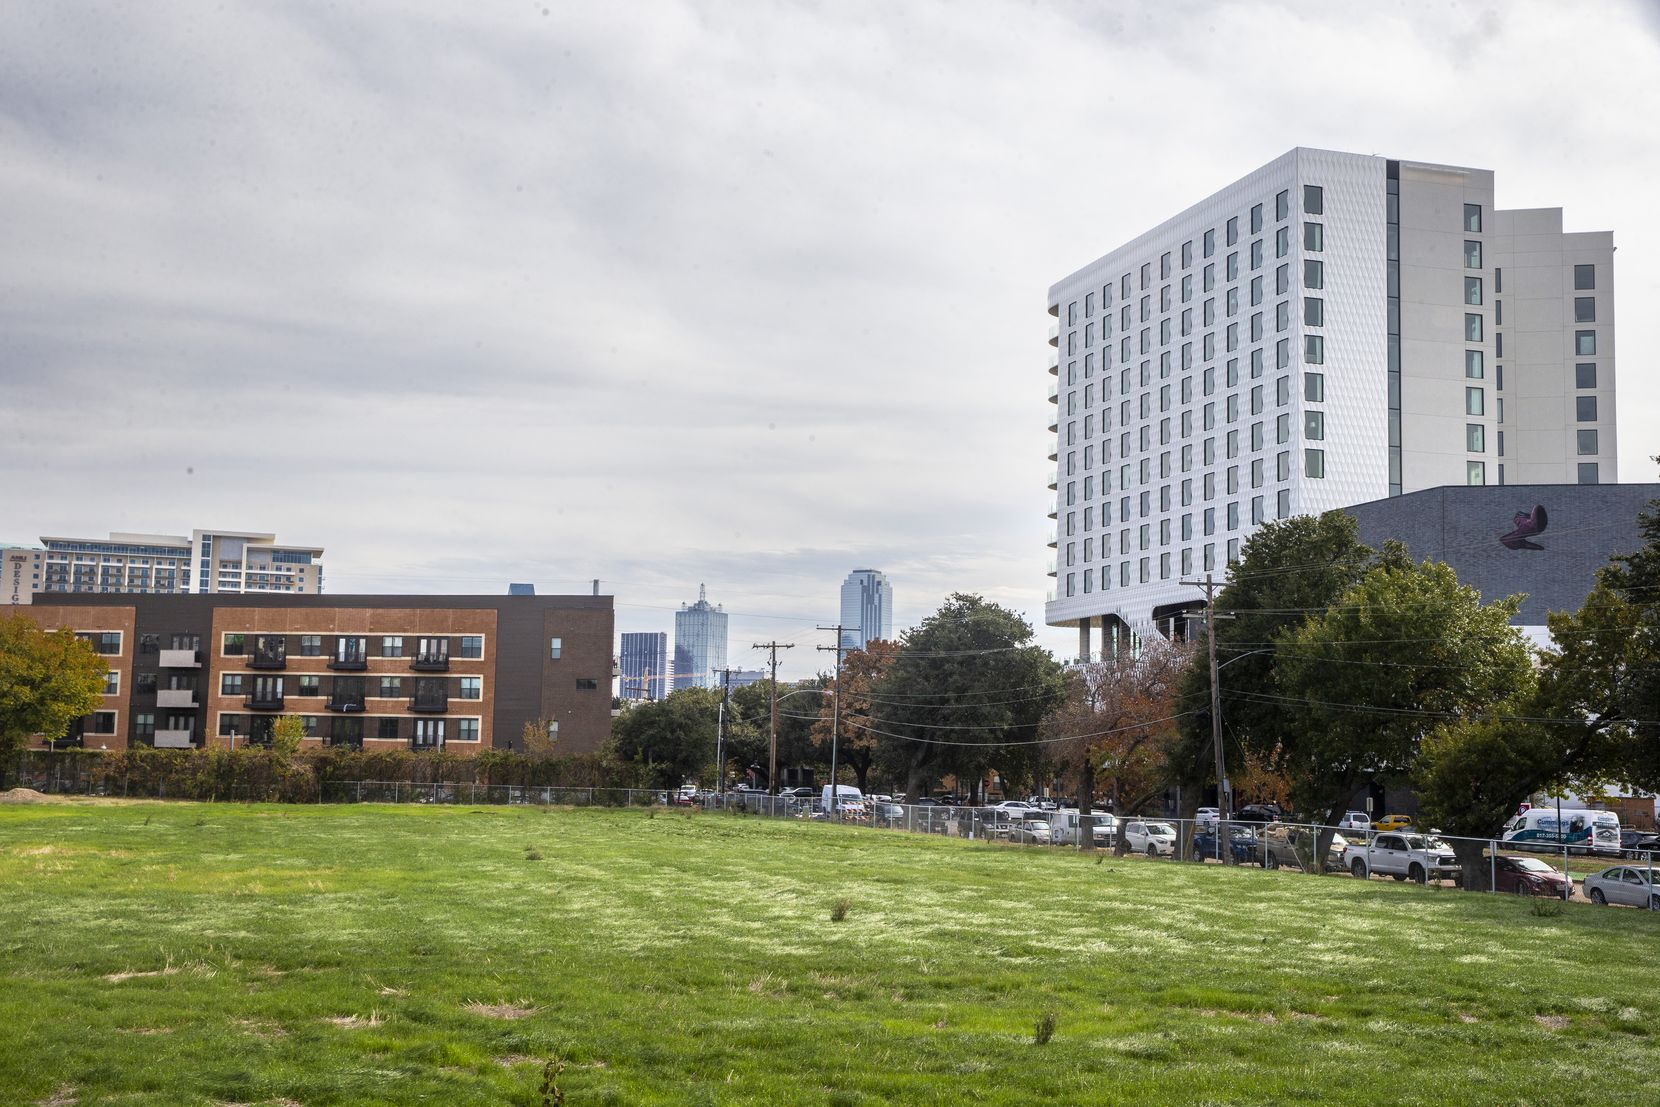 A vacant lot across from the Virgin Hotel (right) in the Dallas Design District is the site of the new apartment tower.